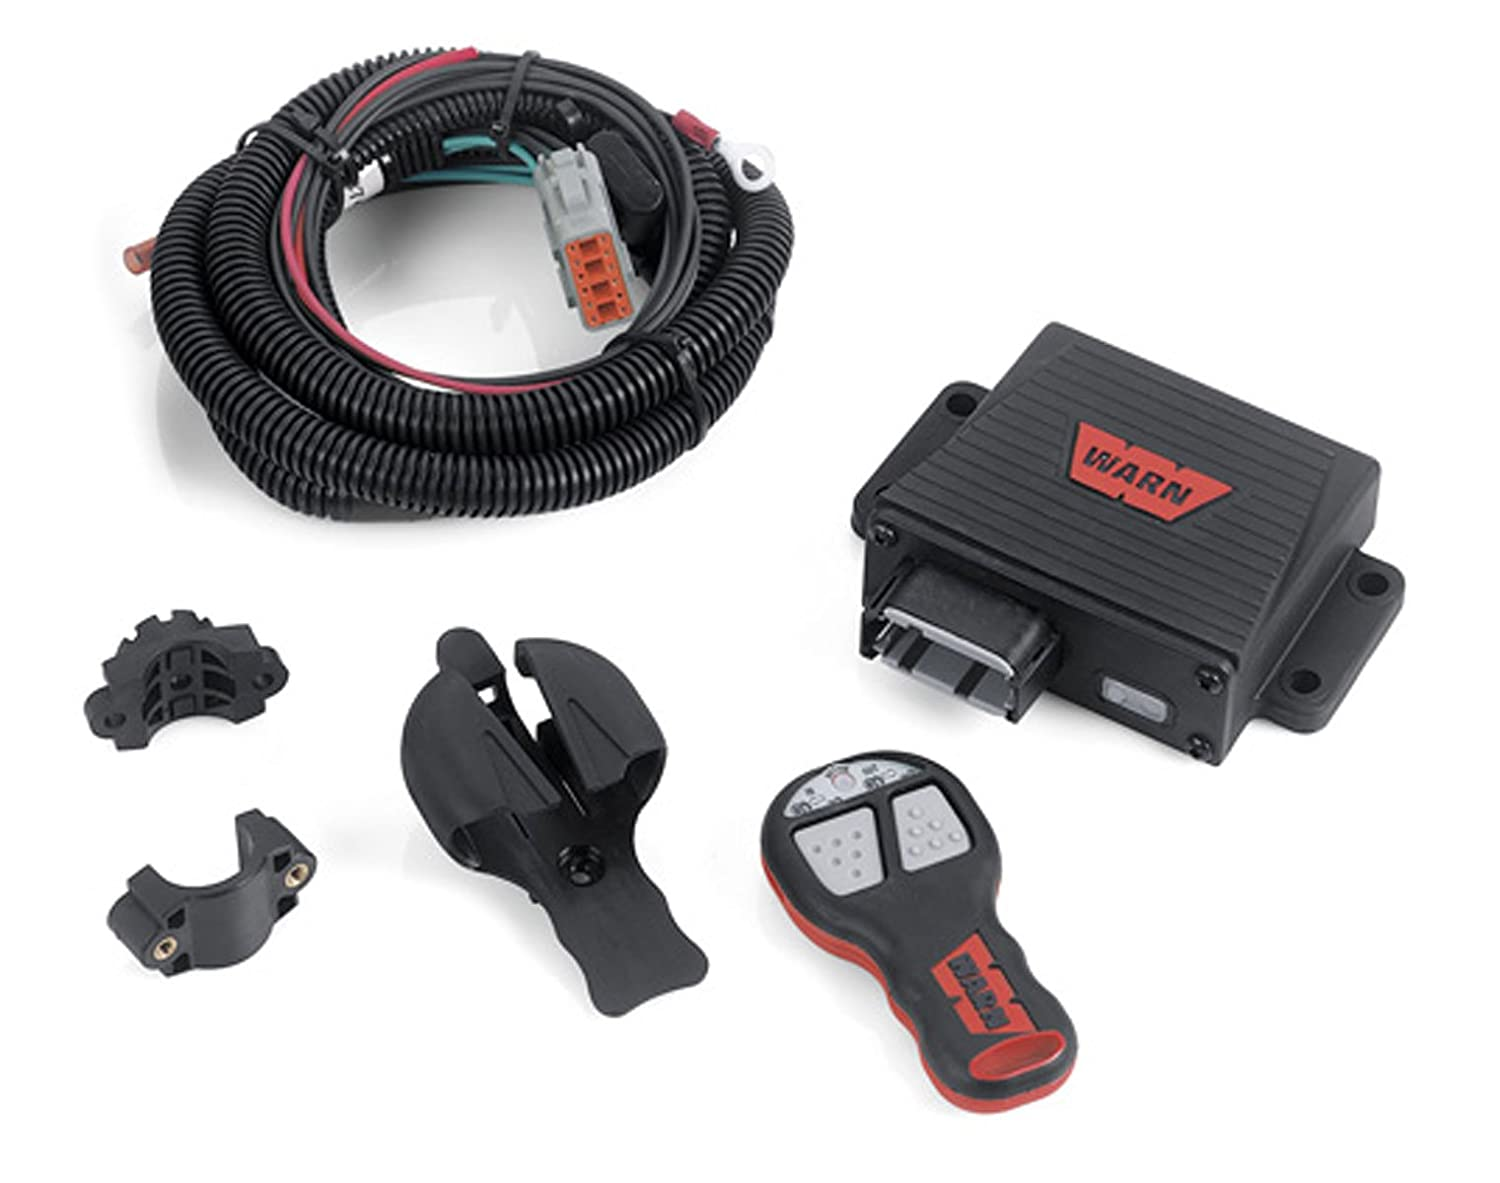 Warn Winch Wireless Control System Replacement Transmitter` 74520